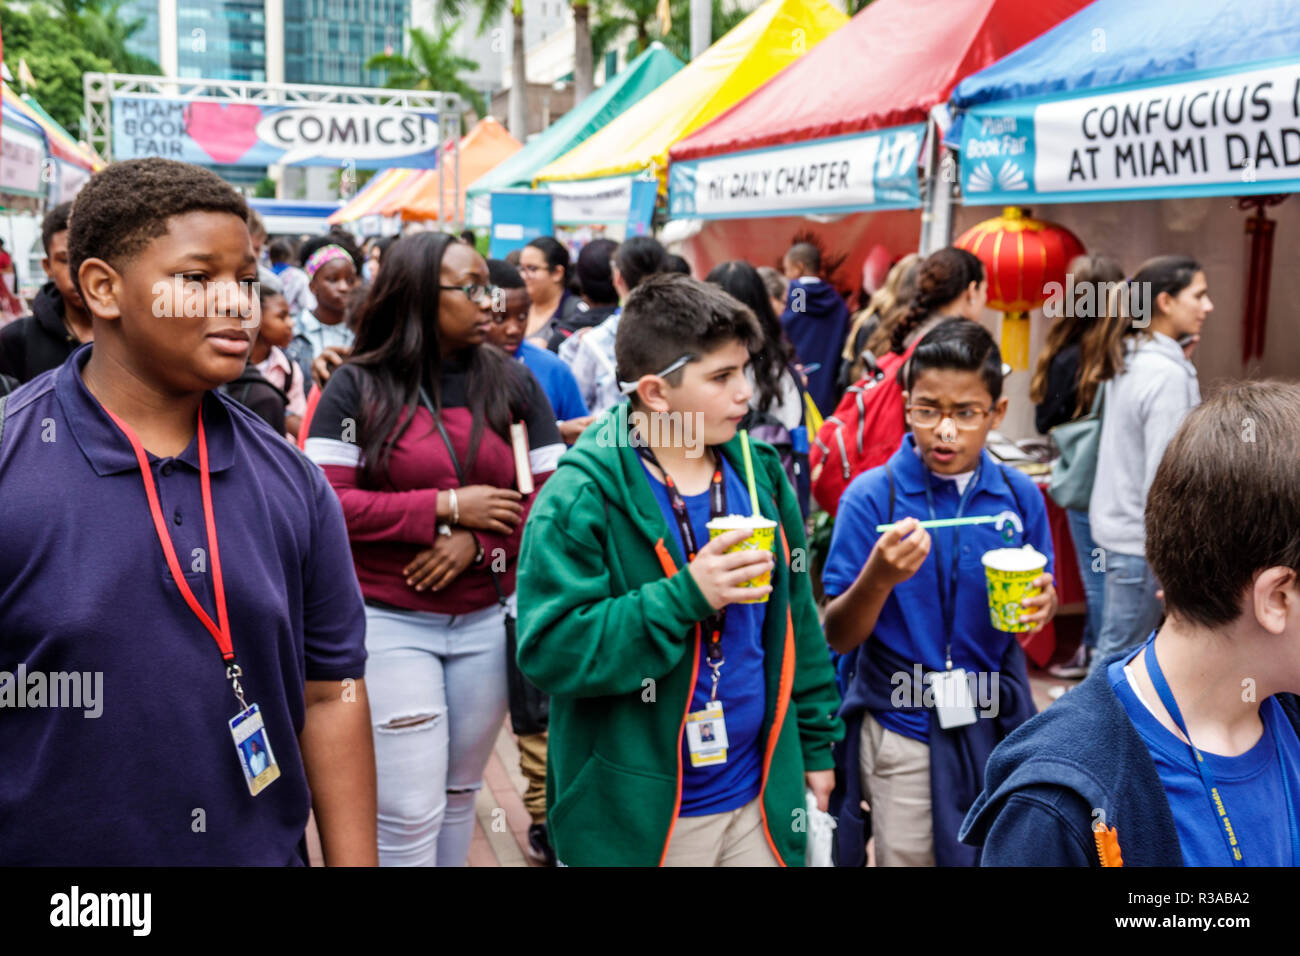 Miami Miami Florida-Dade College Book Fair annual event booths stalls vendors booksellers books sale shopping student boy Hispanic Black friends - Stock Image